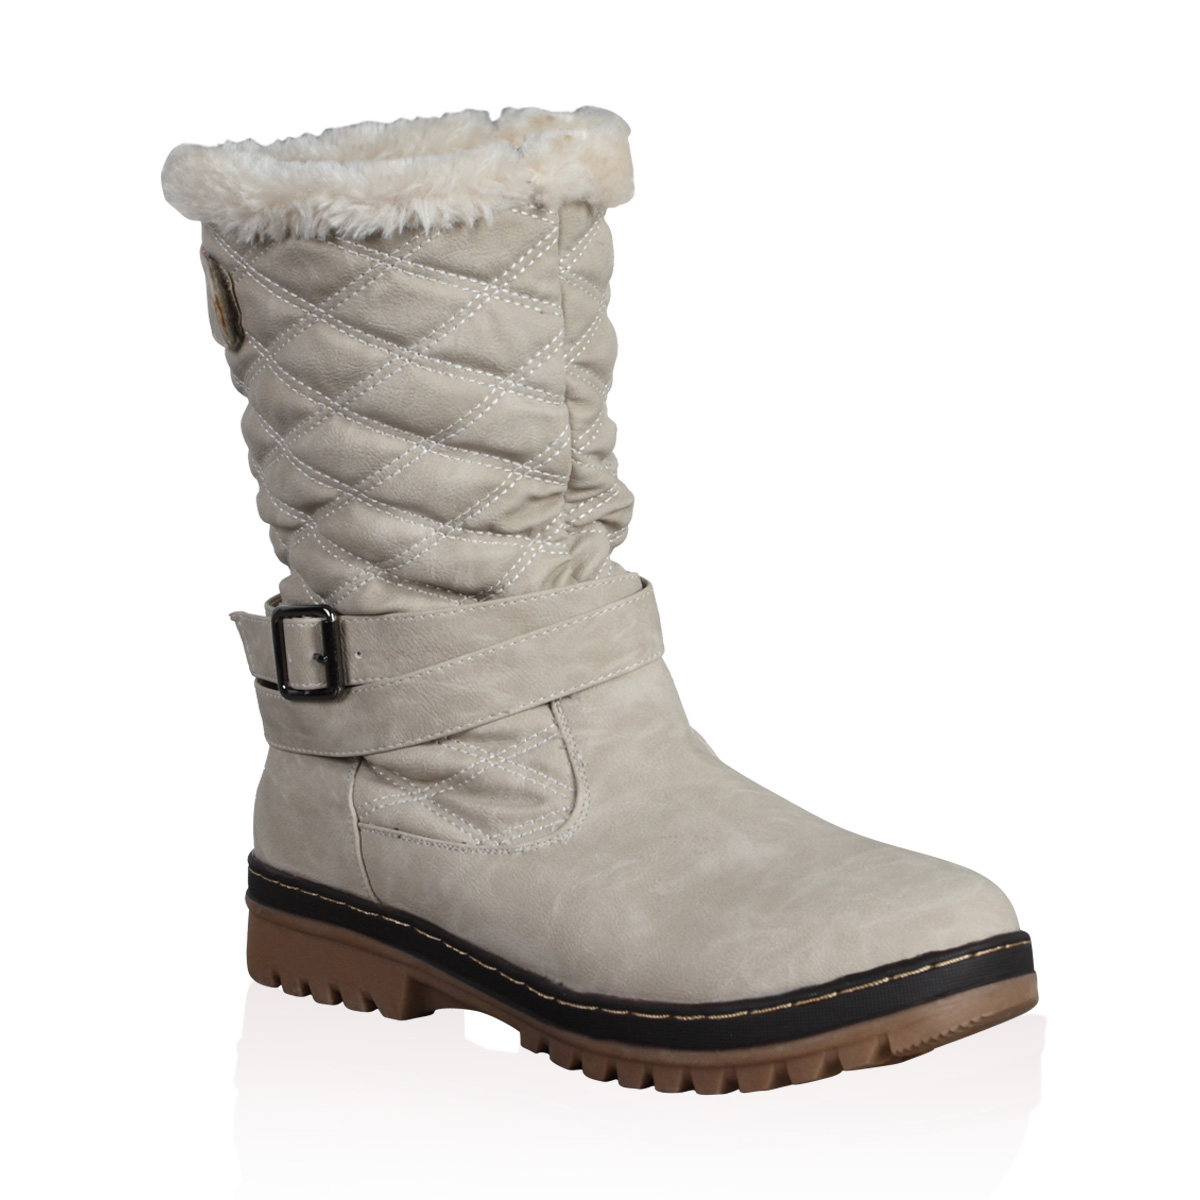 New Ladies Quilted Womens Faux Fur Grip Sole Winter Snow